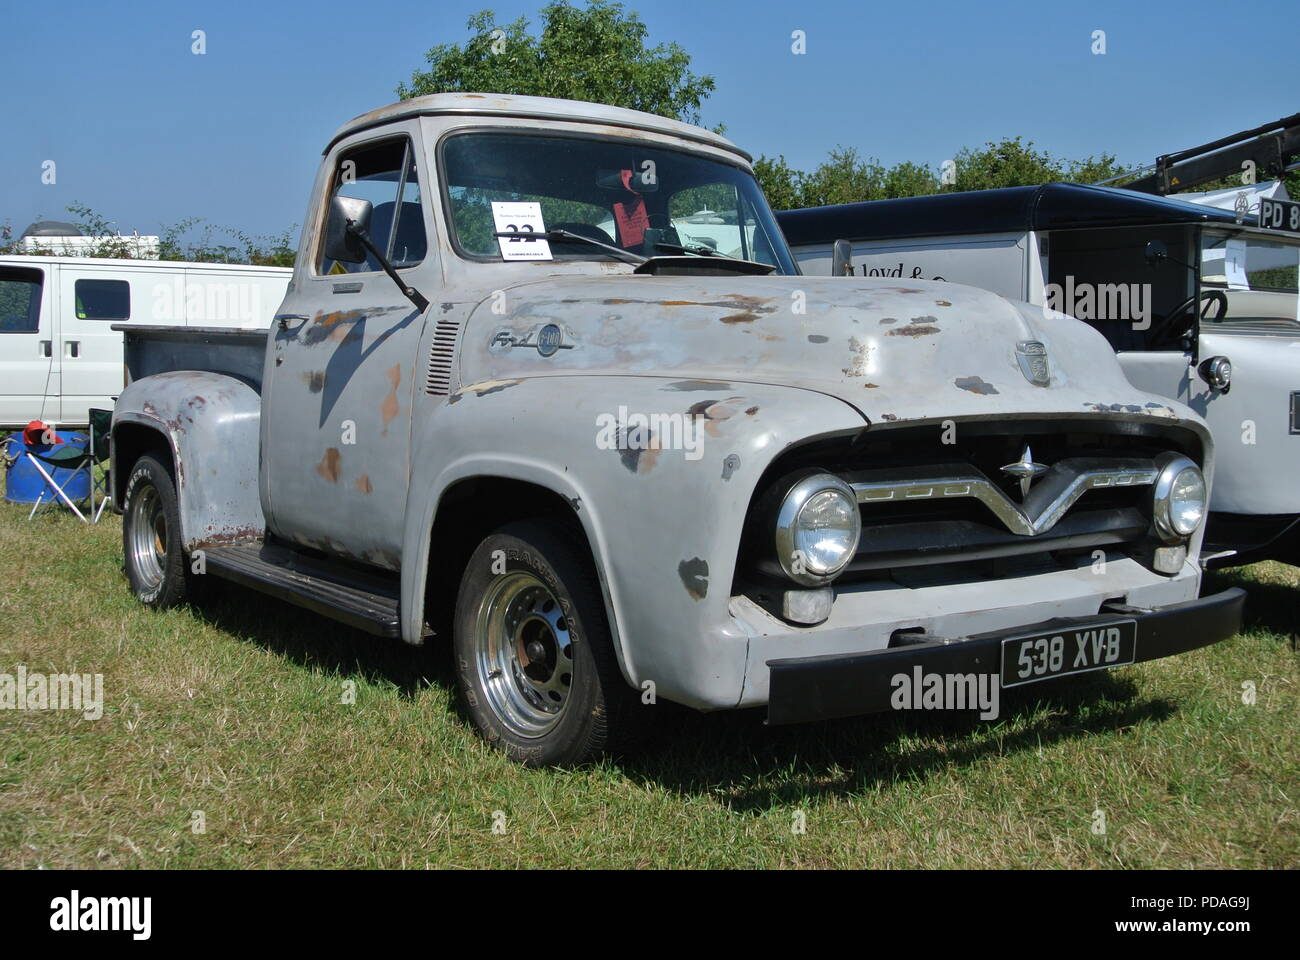 Ford F100 Stock Photos Images Alamy 1955 Side A Pickup Truck Parked Up On Display At Torbay Steam Fair Churston